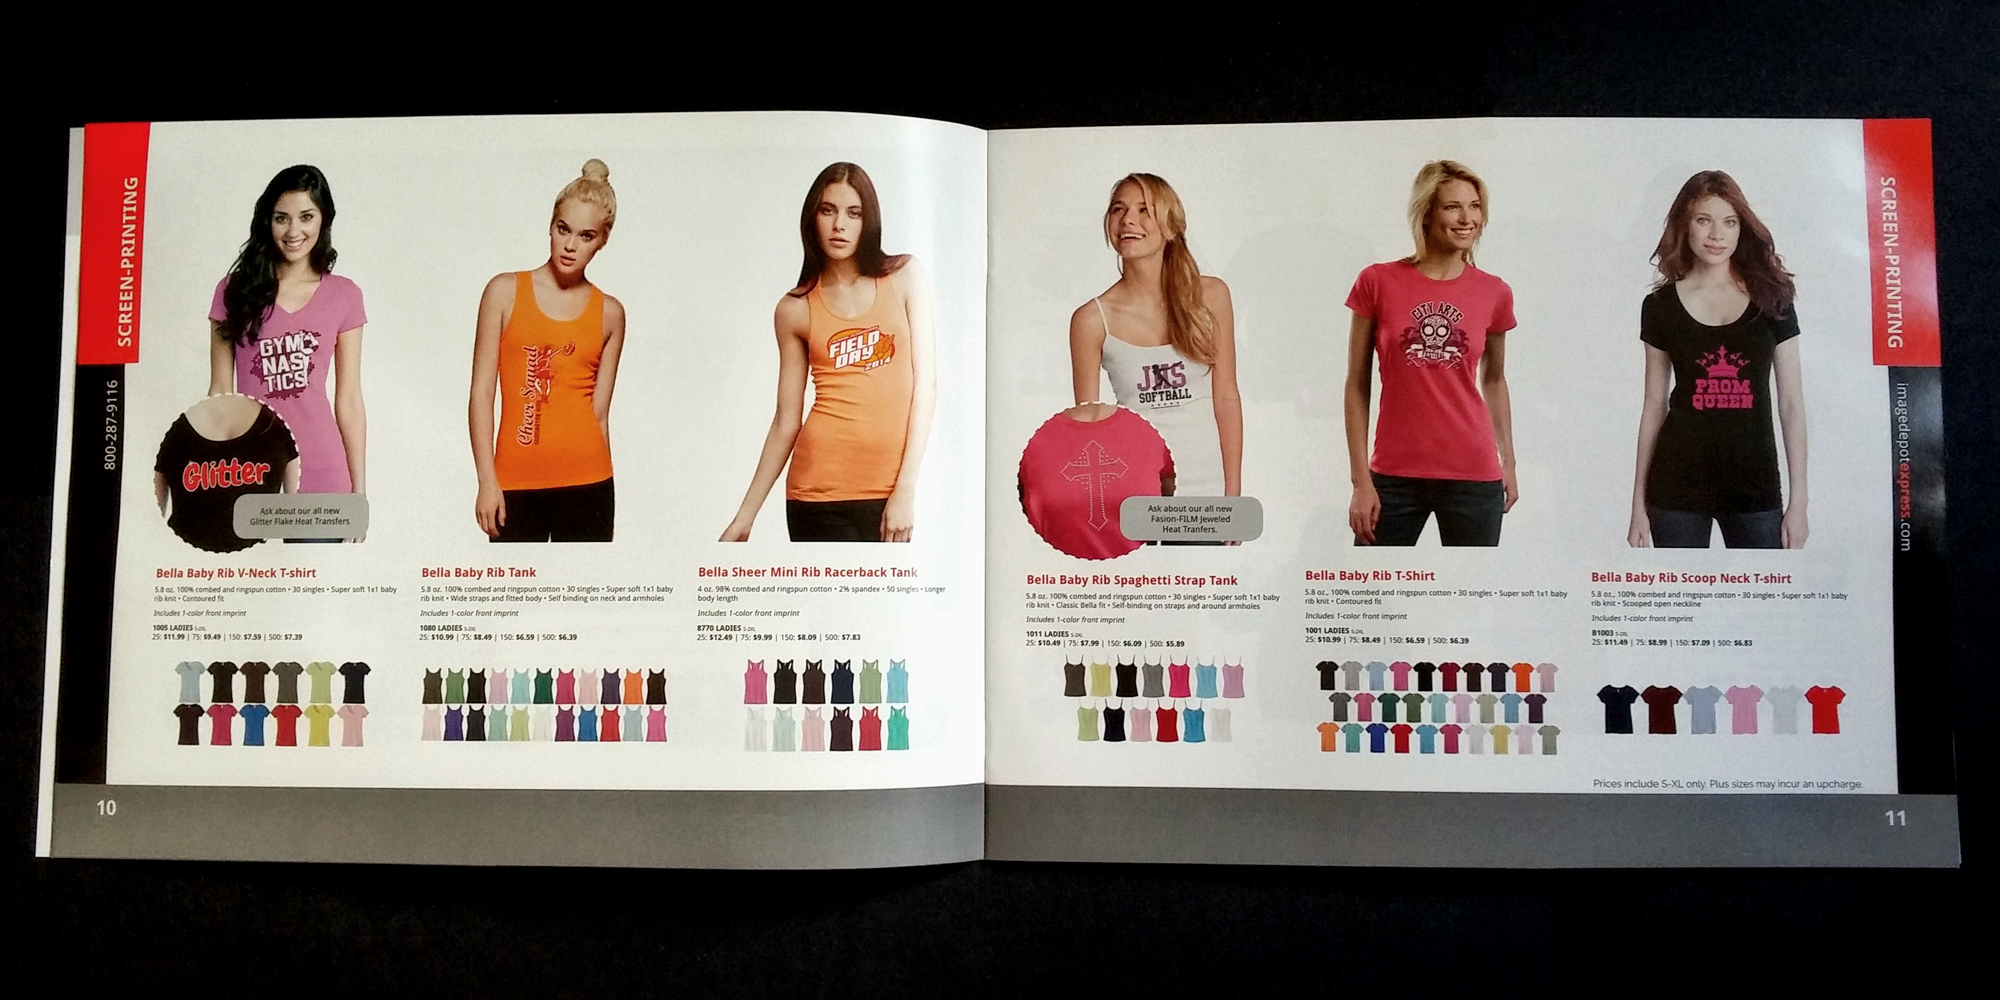 Photo of some apparel products in the Image Depot Express catalog.